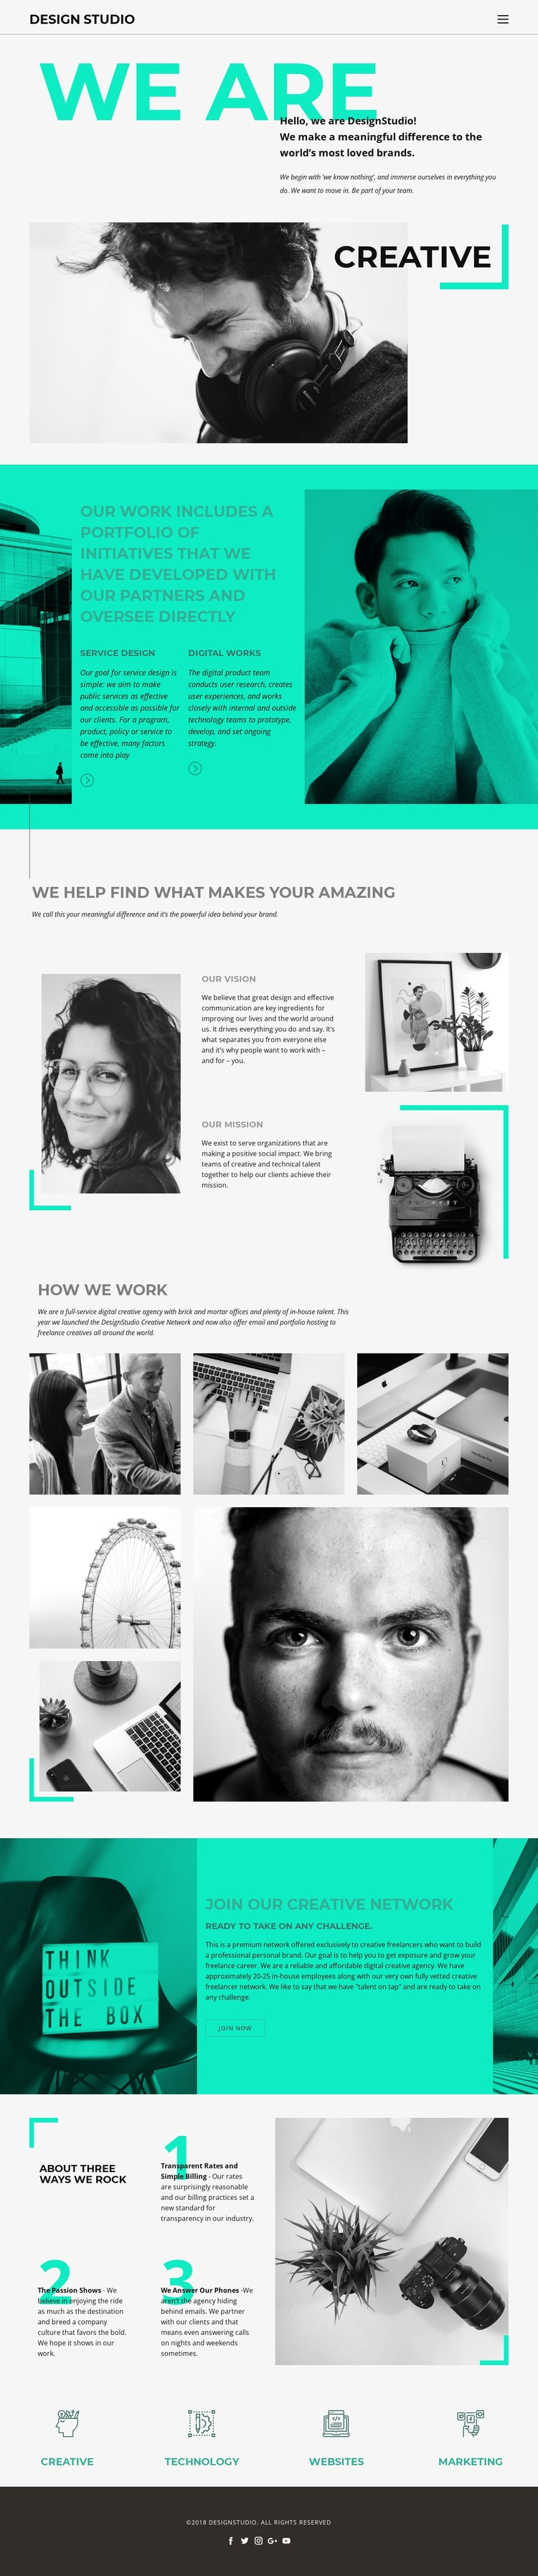 We are creative business Static Site Generator